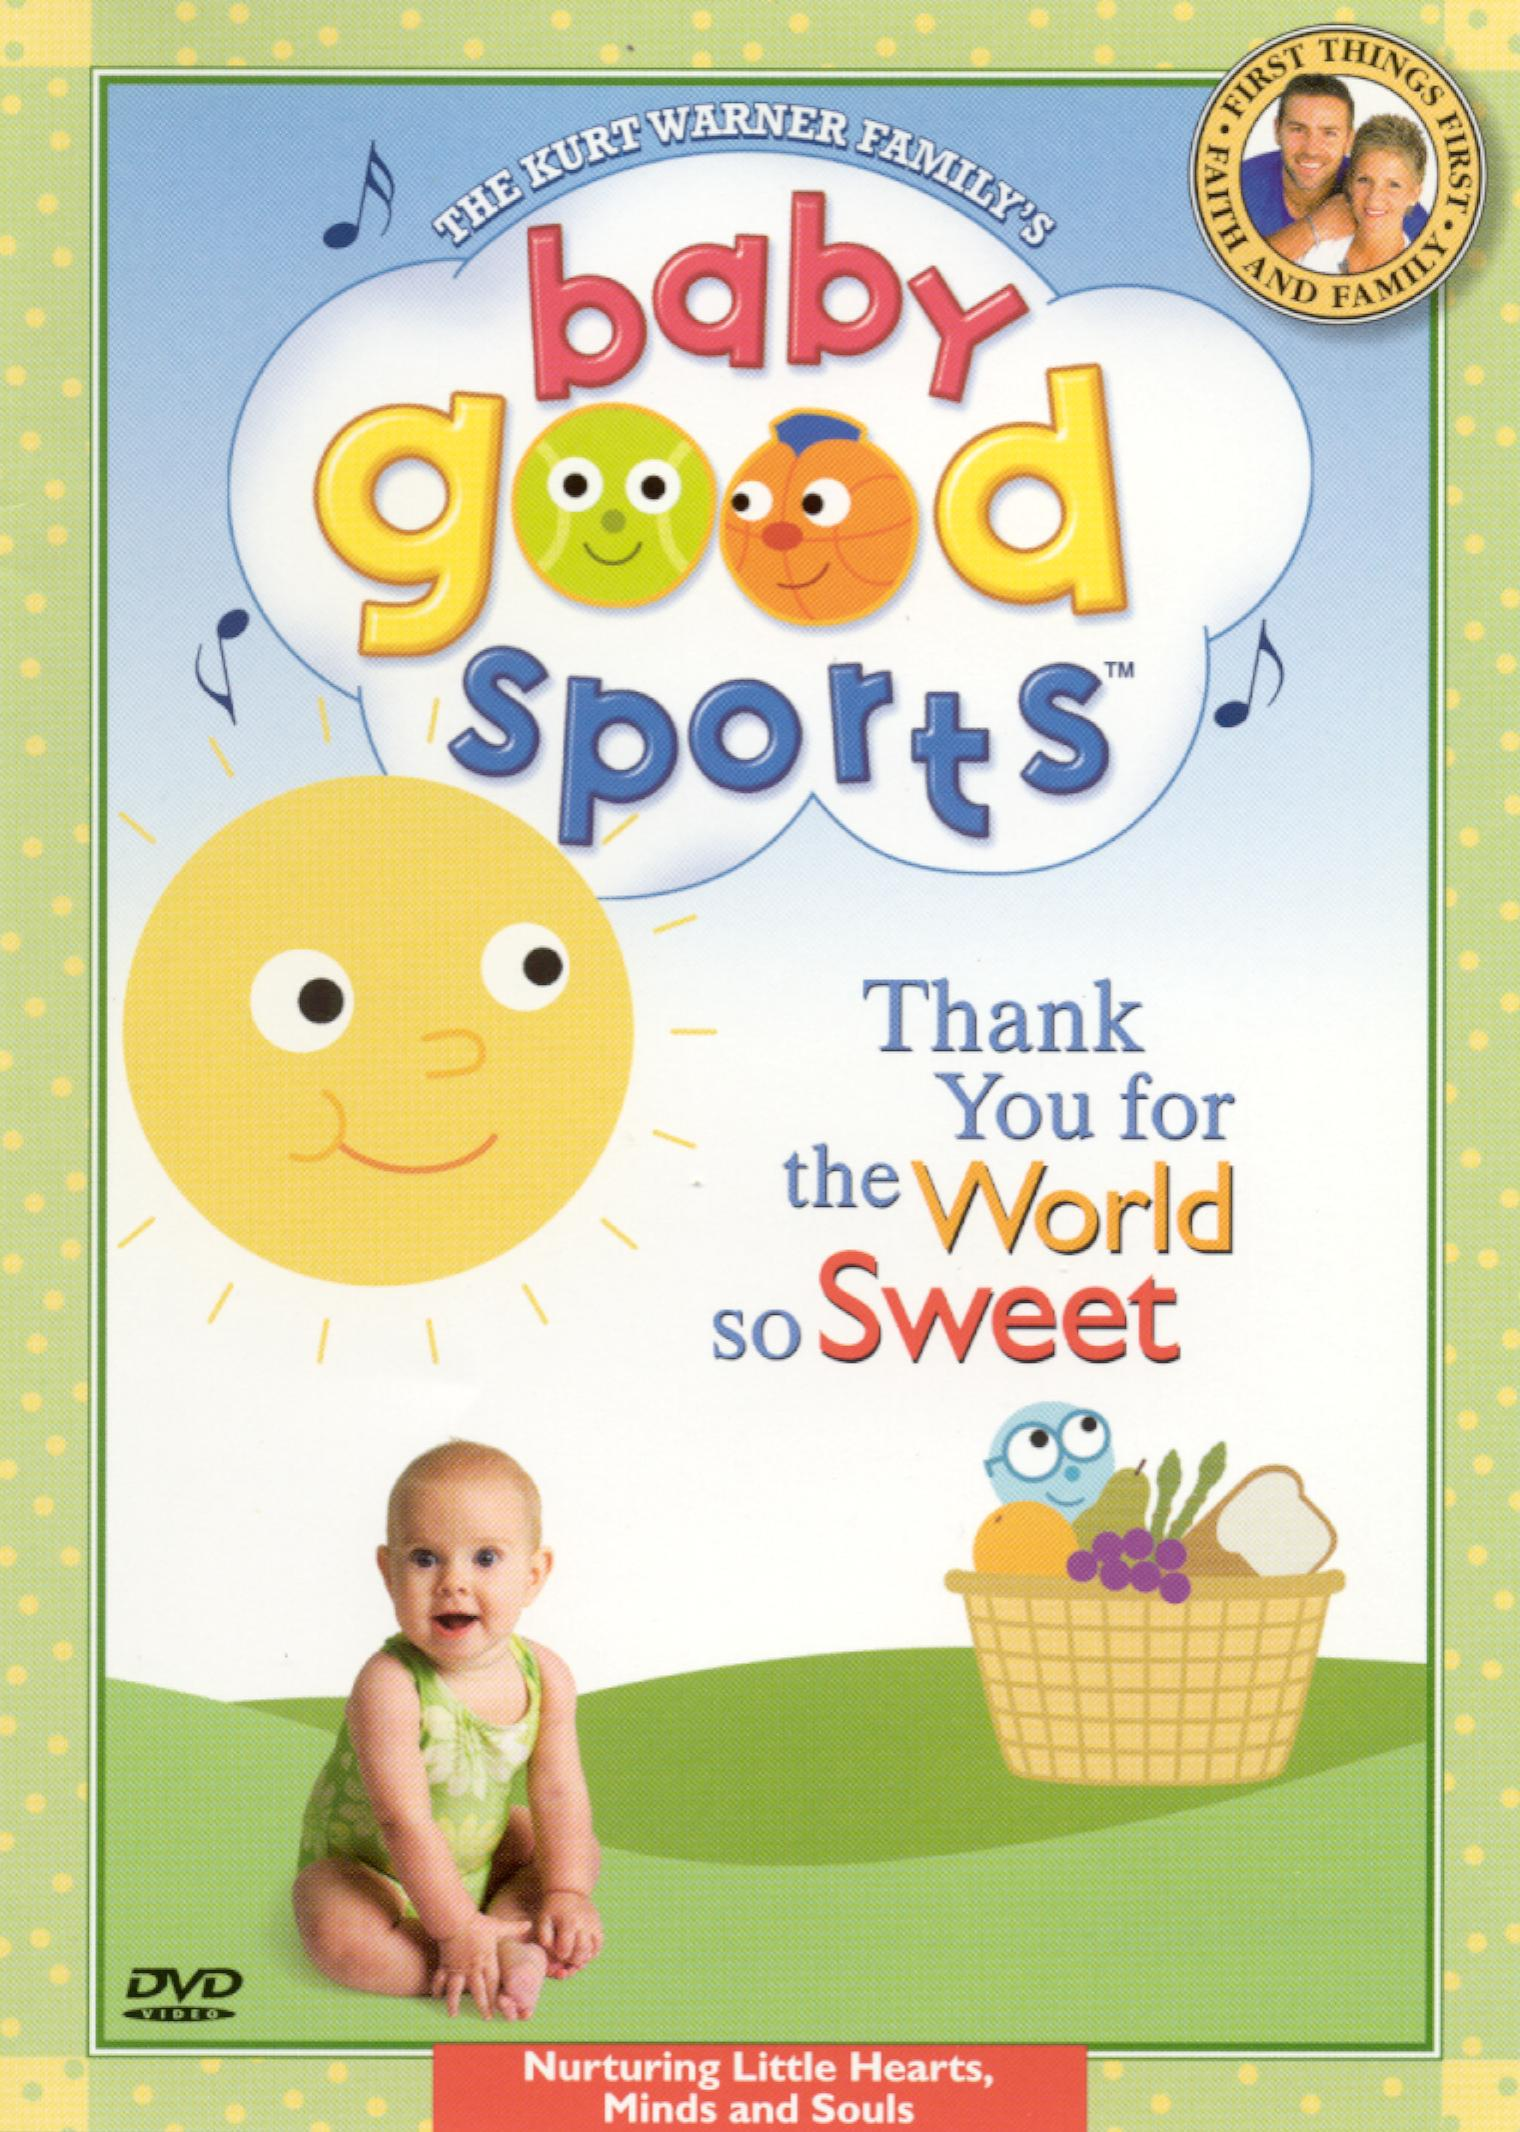 Baby Good Sports: Thank You For the World So Sweet